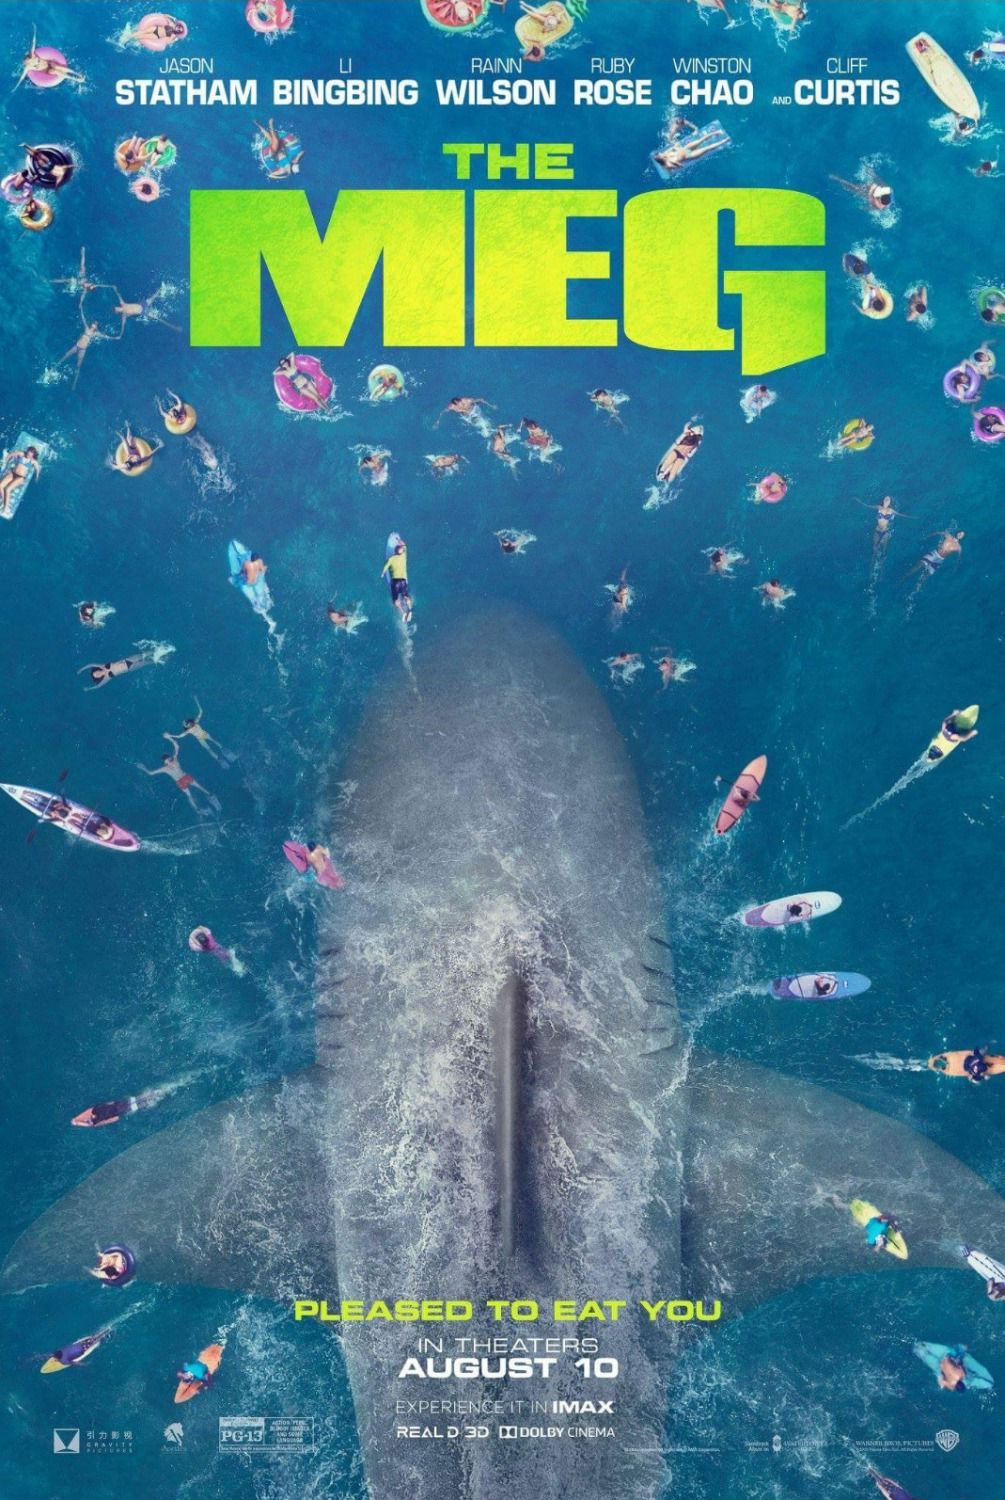 The Meg - chomp on this - Cast: Jason Statham, Ruby Rose, Jessica McNamee, Robert Taylor - shark megalodont horror film poster 2018